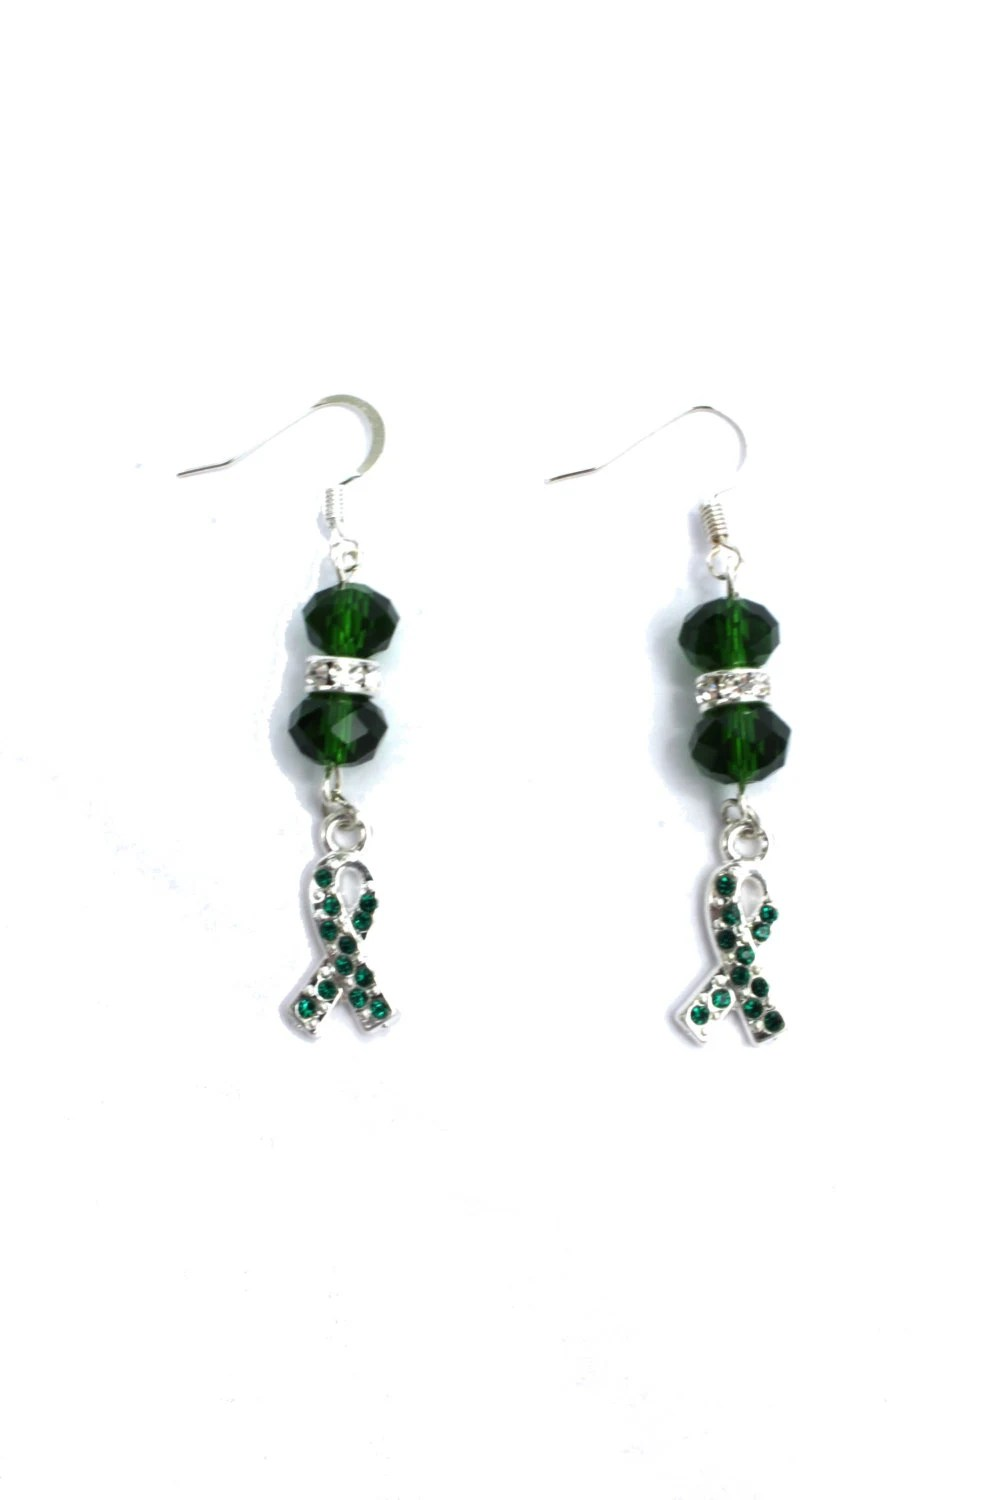 Cerebral Palsy Awareness Earrings with Extra Bling